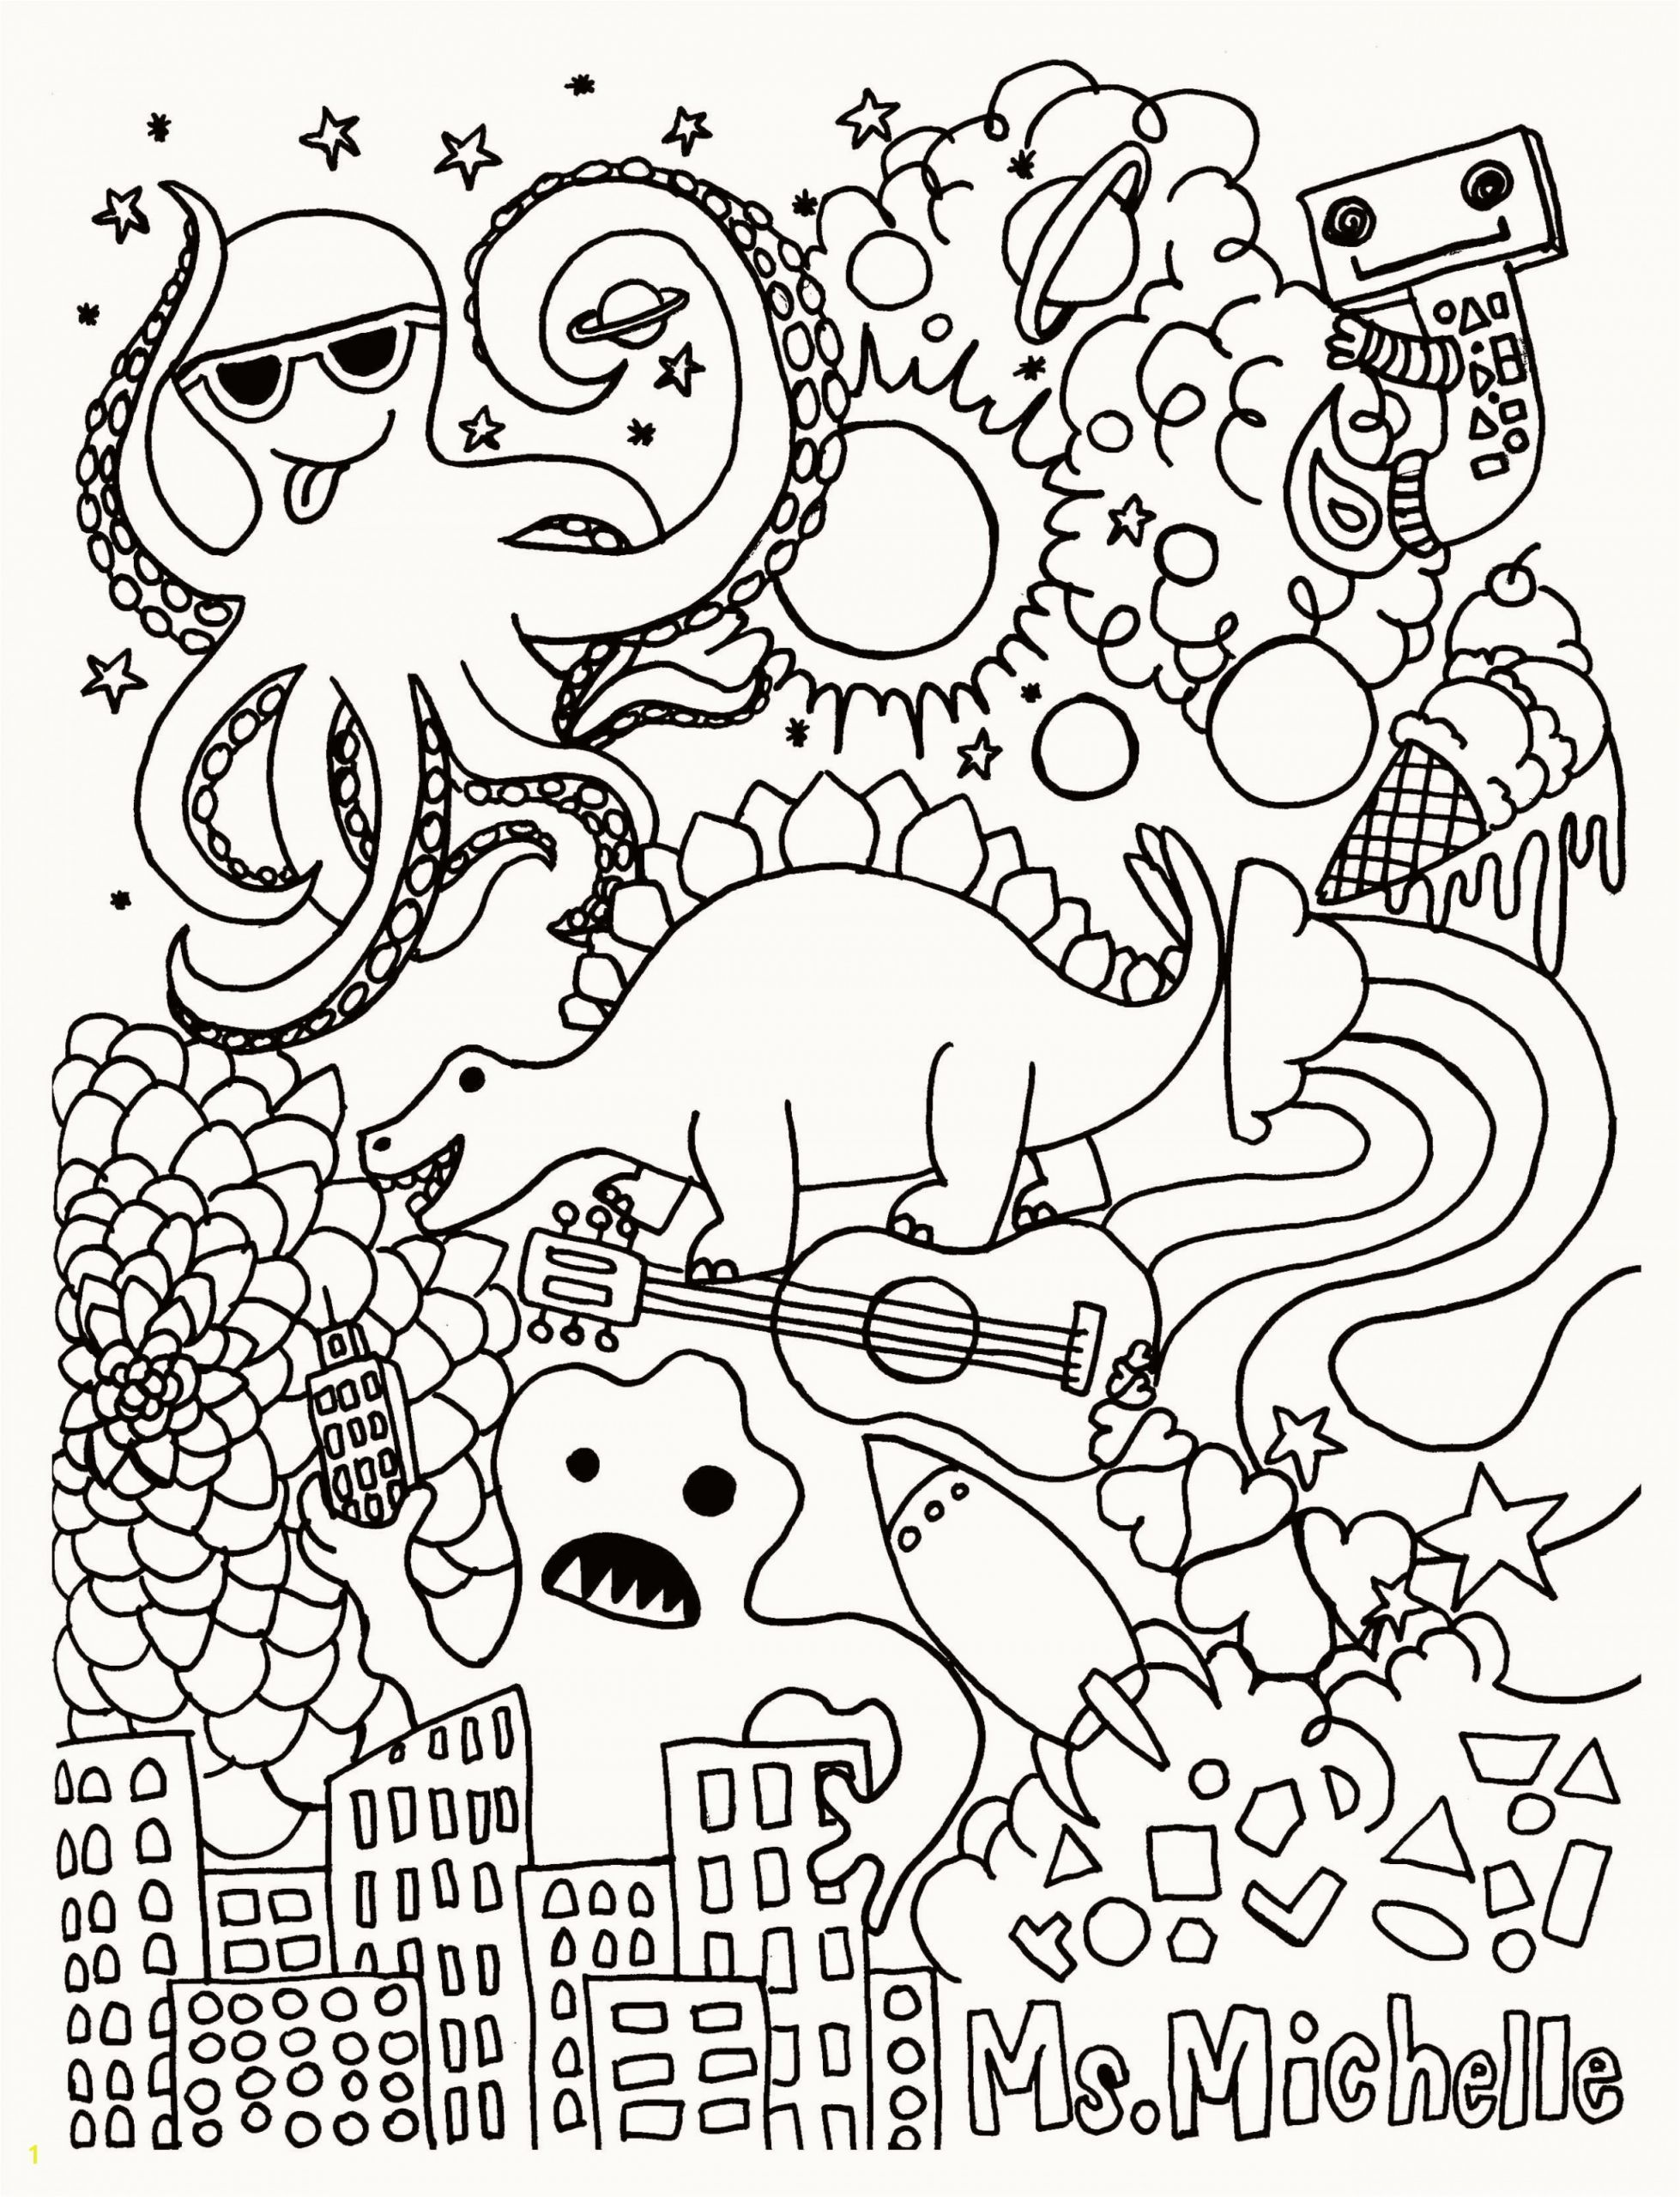 2 Goosebumps Coloring Pages Free Printable Dc Coloring Pages Dc Burlingtonjs Org In 2020 Valentine Coloring Pages Alphabet Coloring Pages Animal Coloring Books